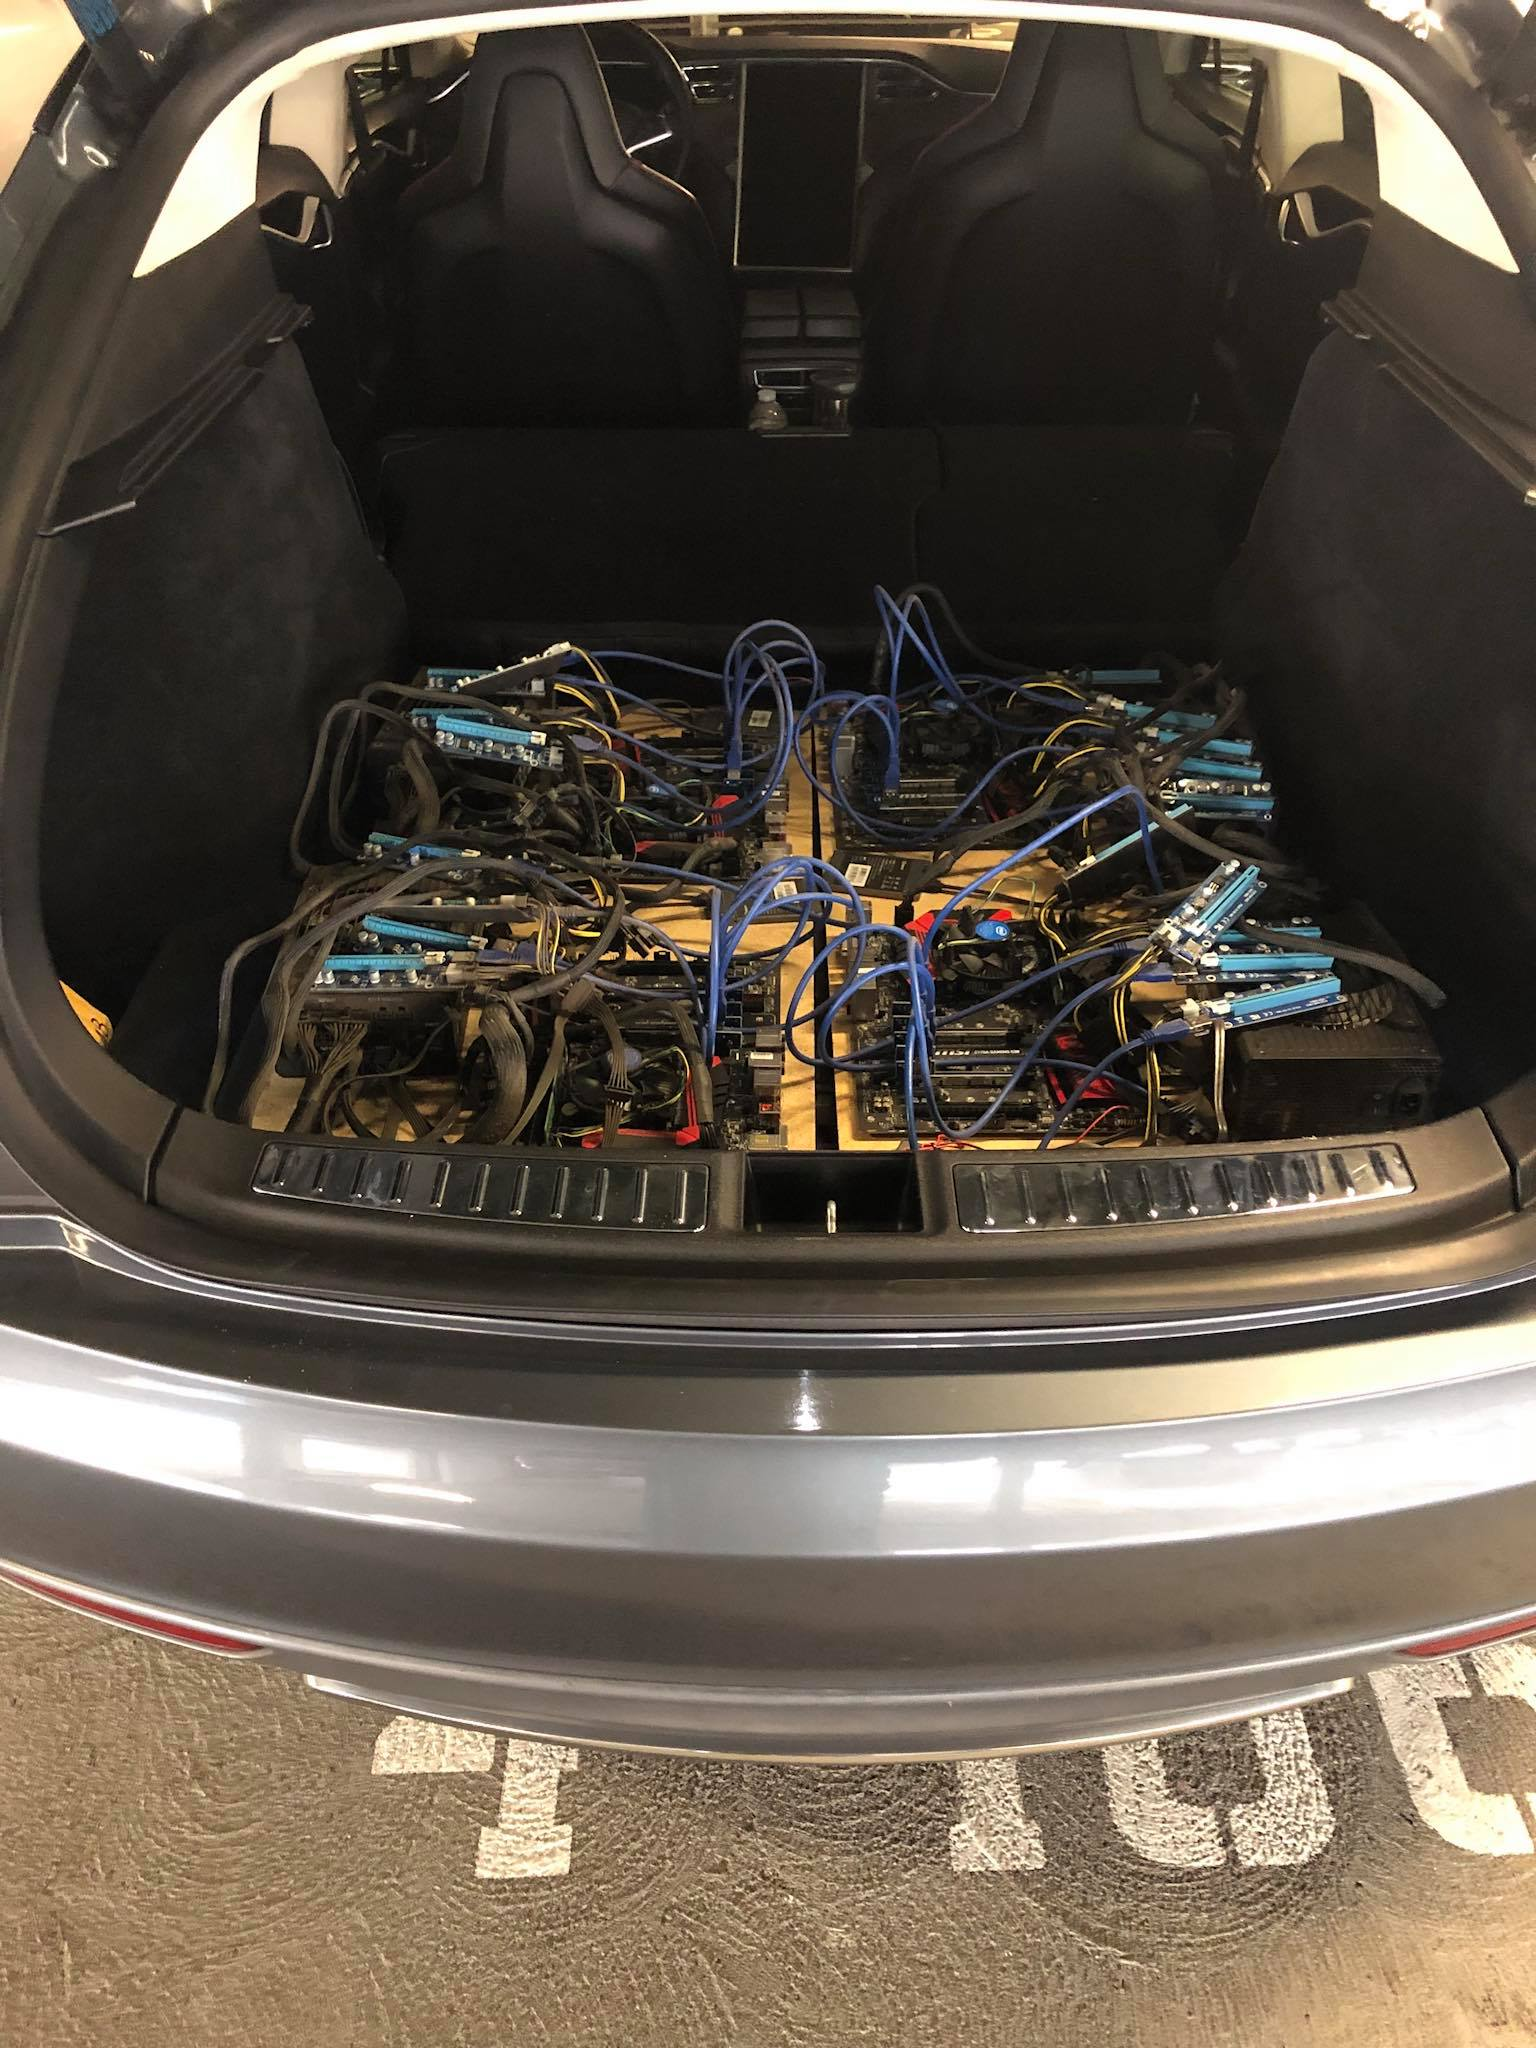 Tesla owner builds a bitcoin mining rig in a Model S to use free